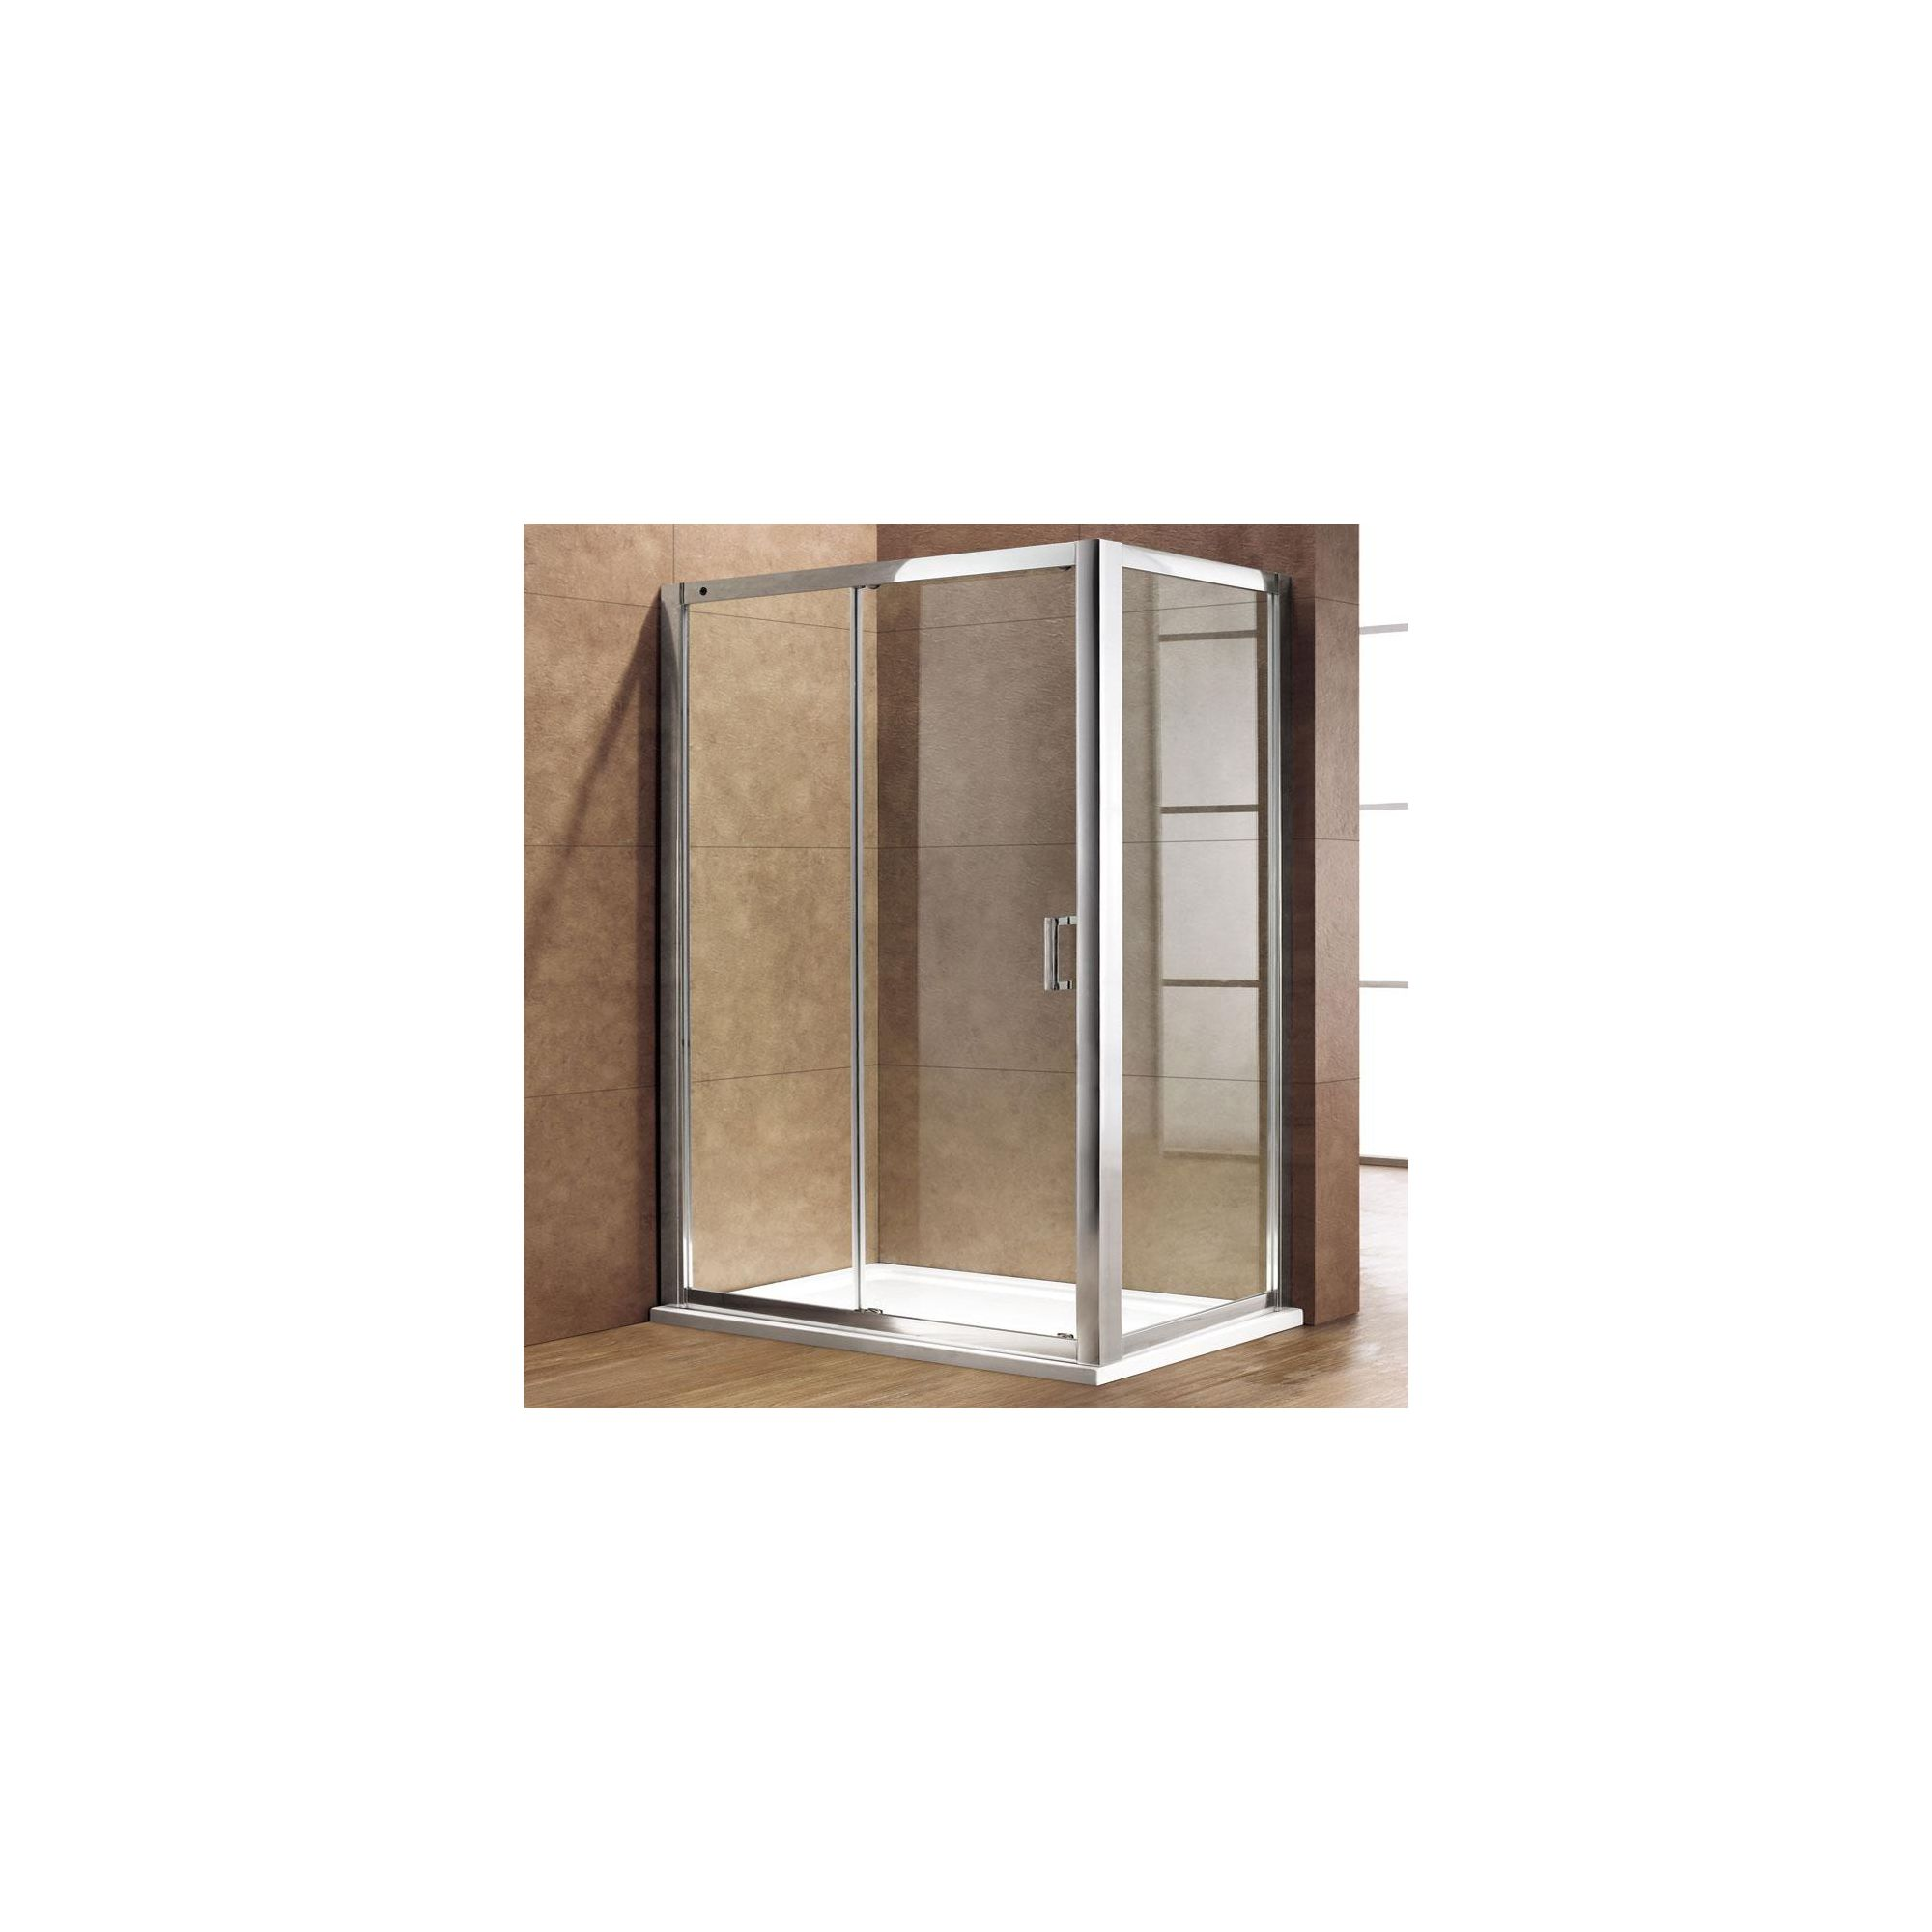 Duchy Premium Single Sliding Door Shower Enclosure, 1100mm x 760mm, 8mm Glass, Low Profile Tray at Tesco Direct